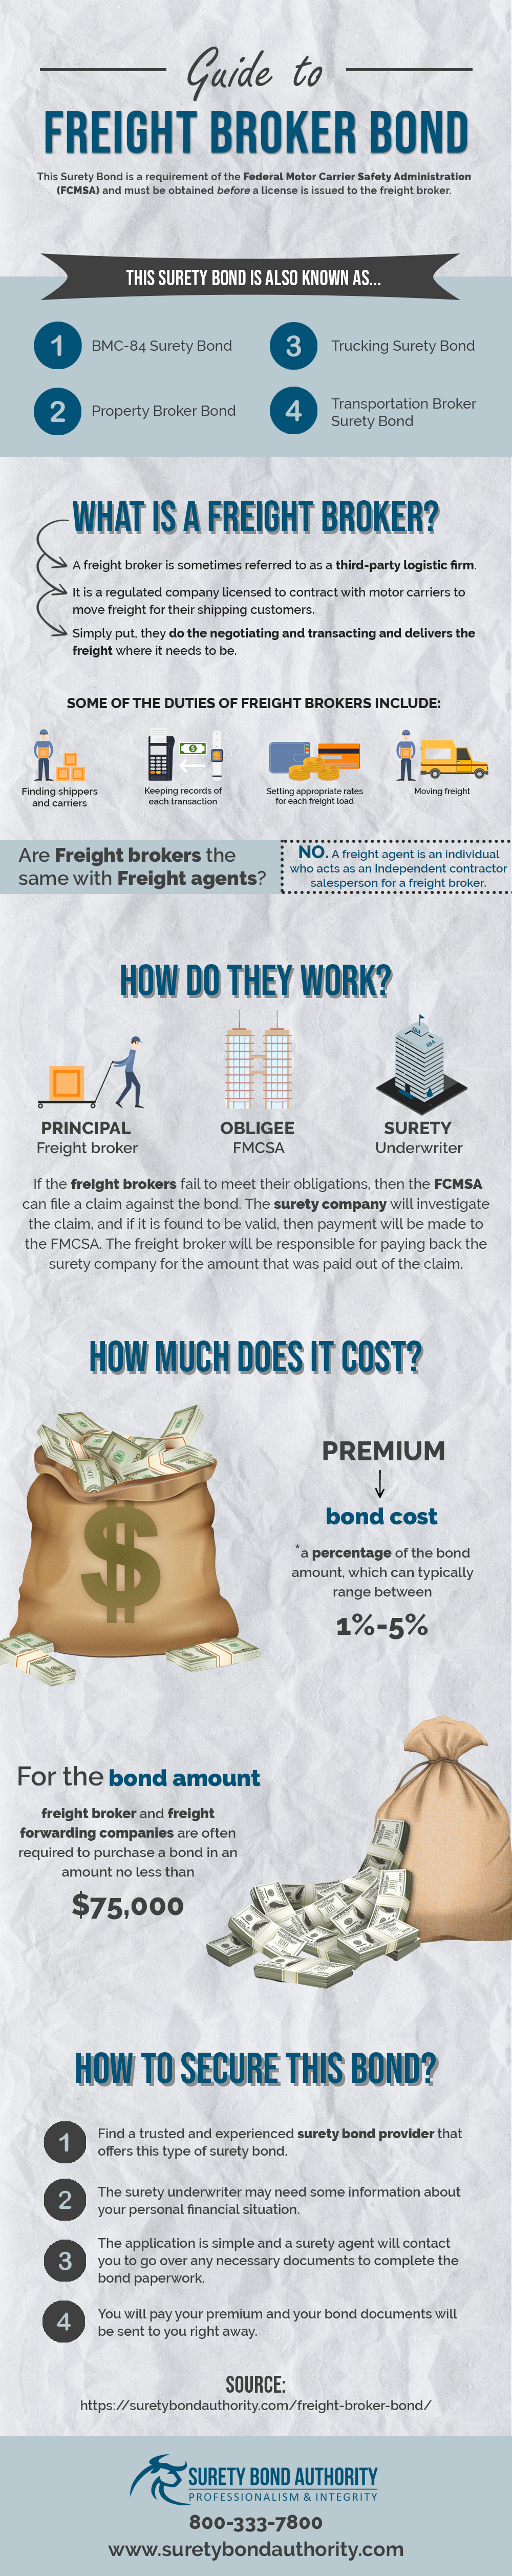 Freight Forwarder Bond Infographic